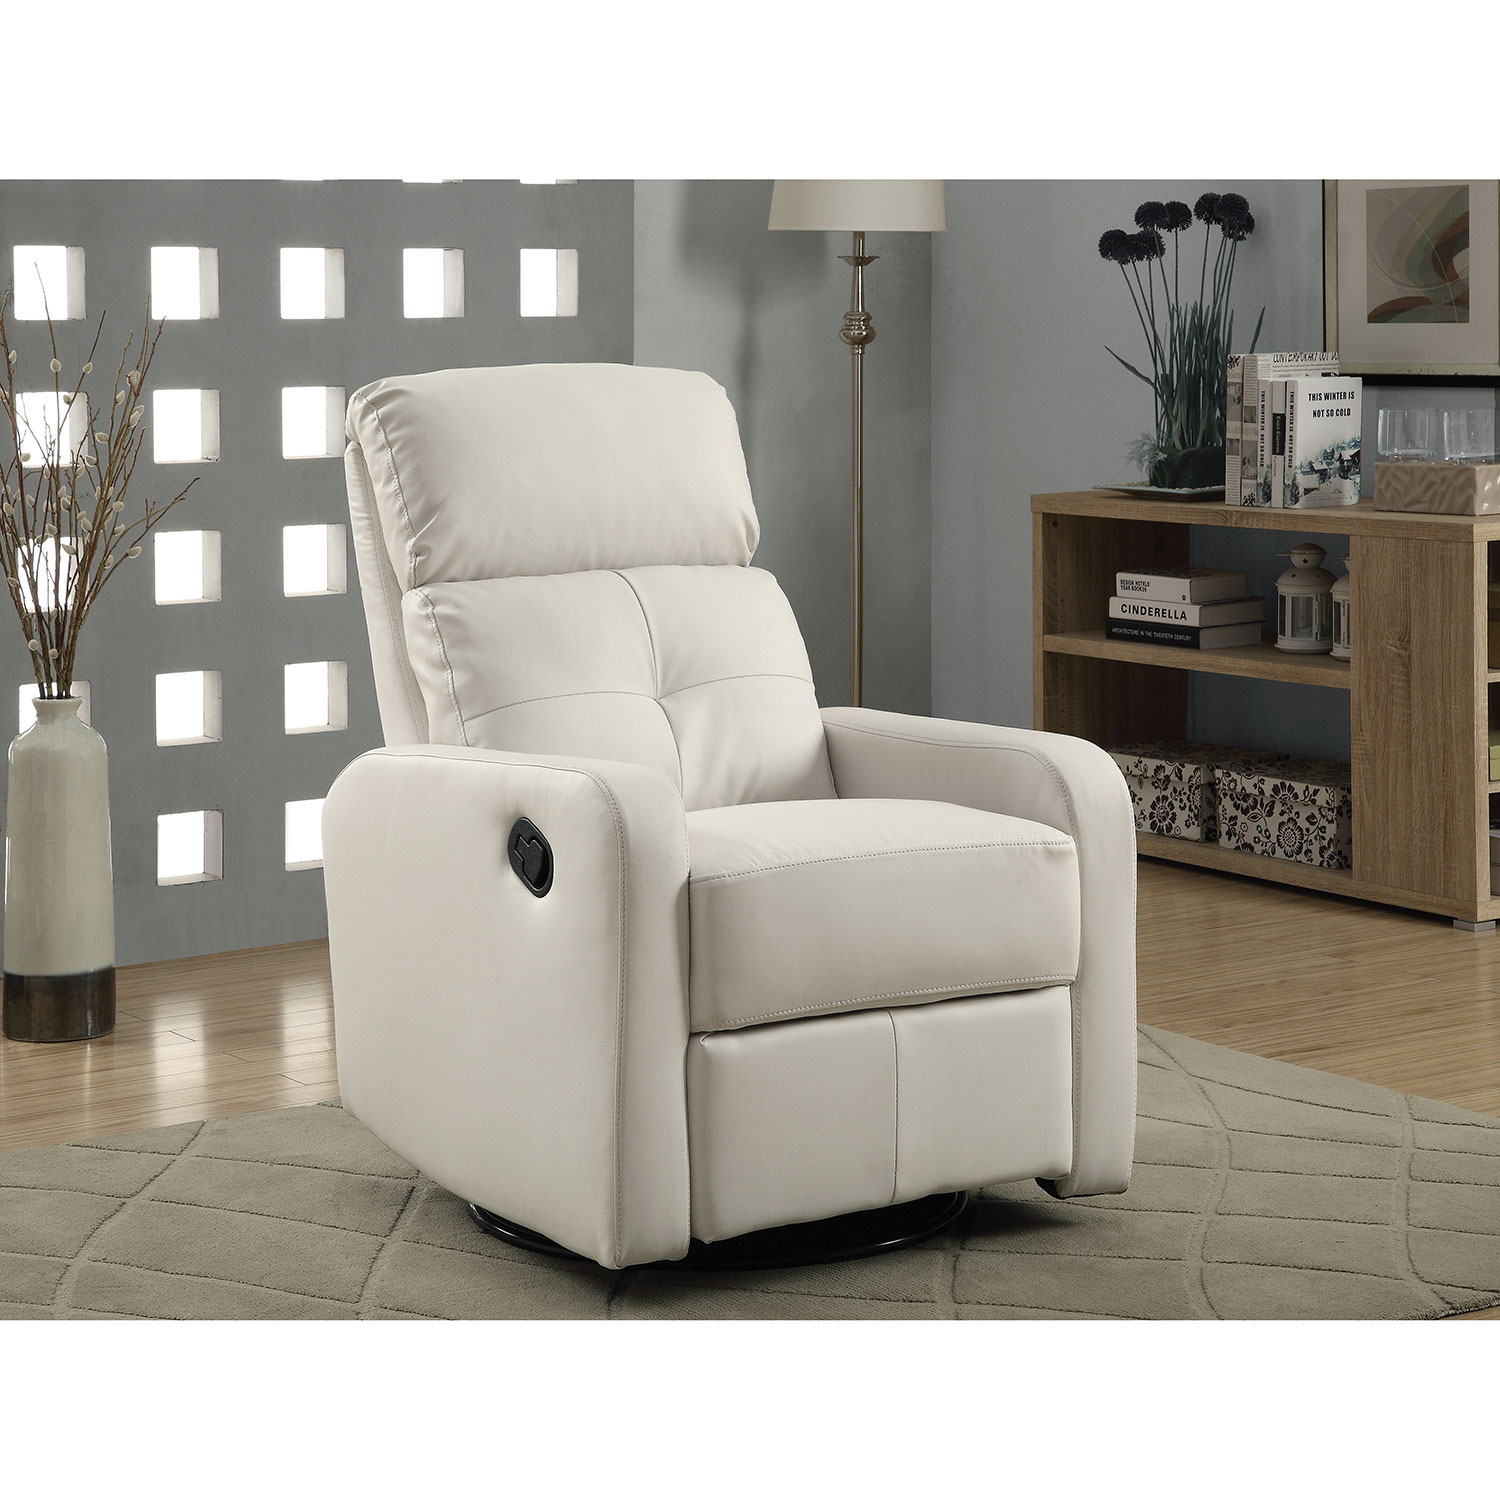 contemporary bonded leather swivel glider recliner chair white